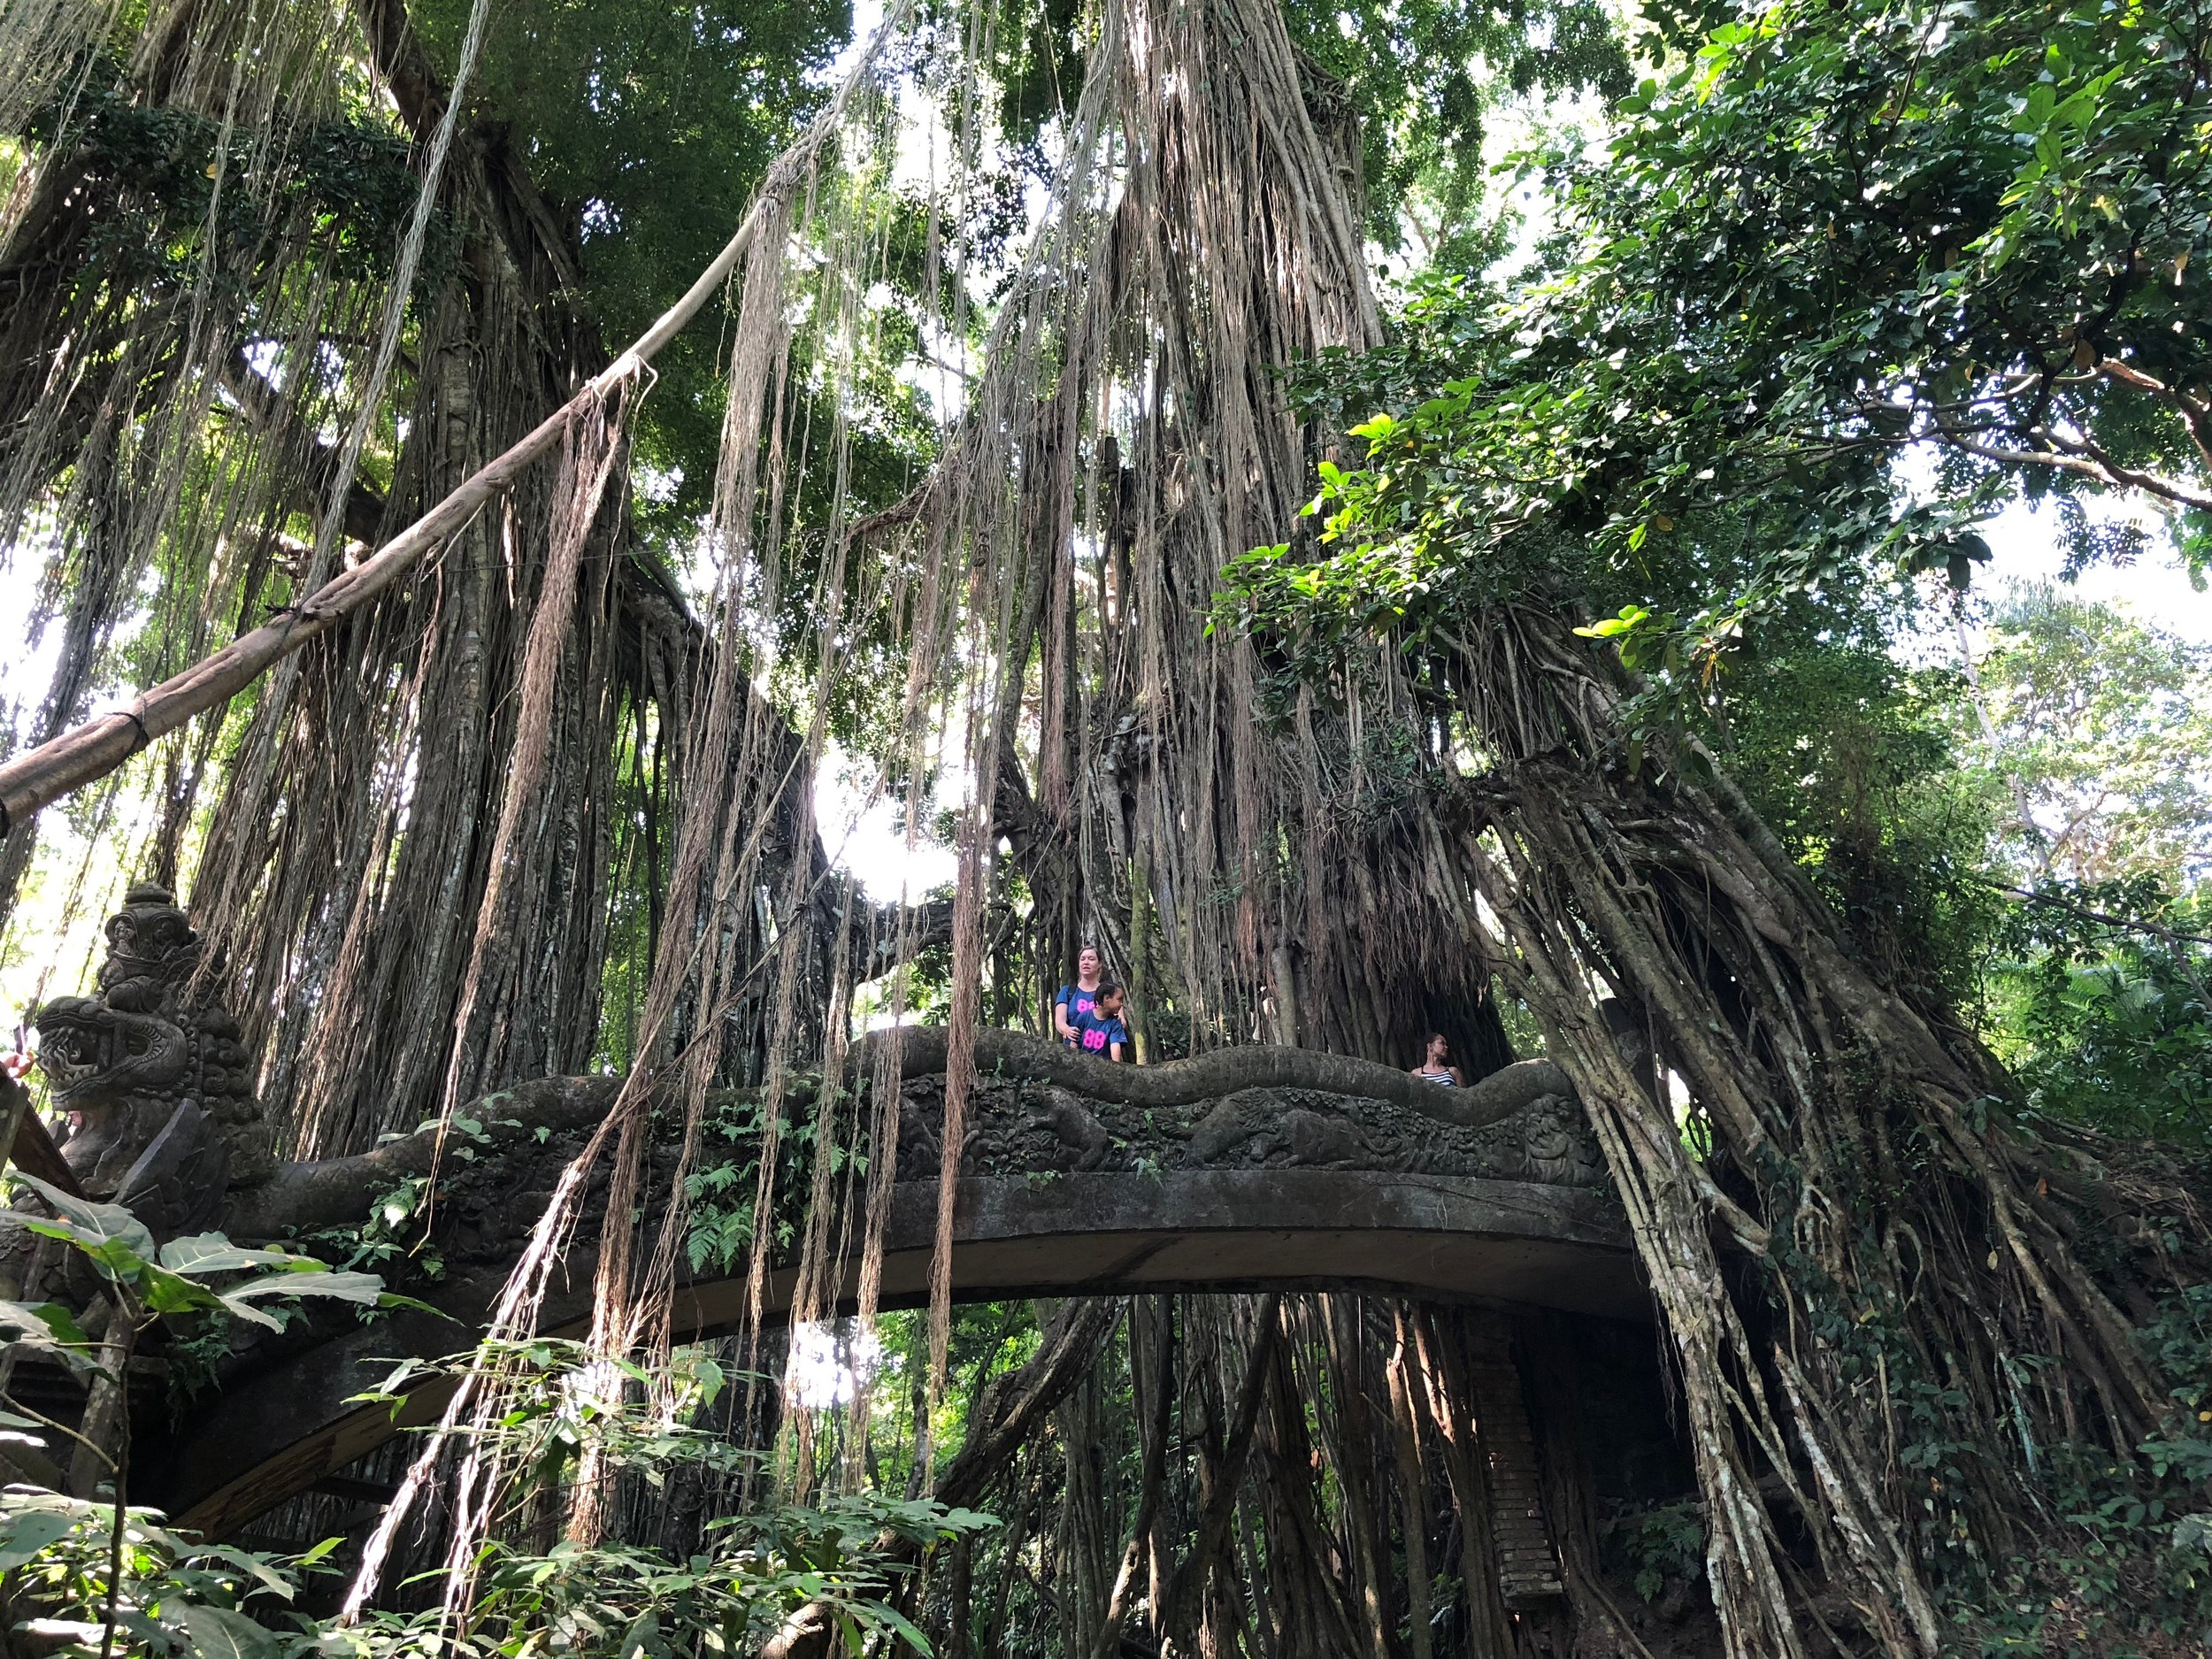 Banyan roots have taken over parts of the sanctuary